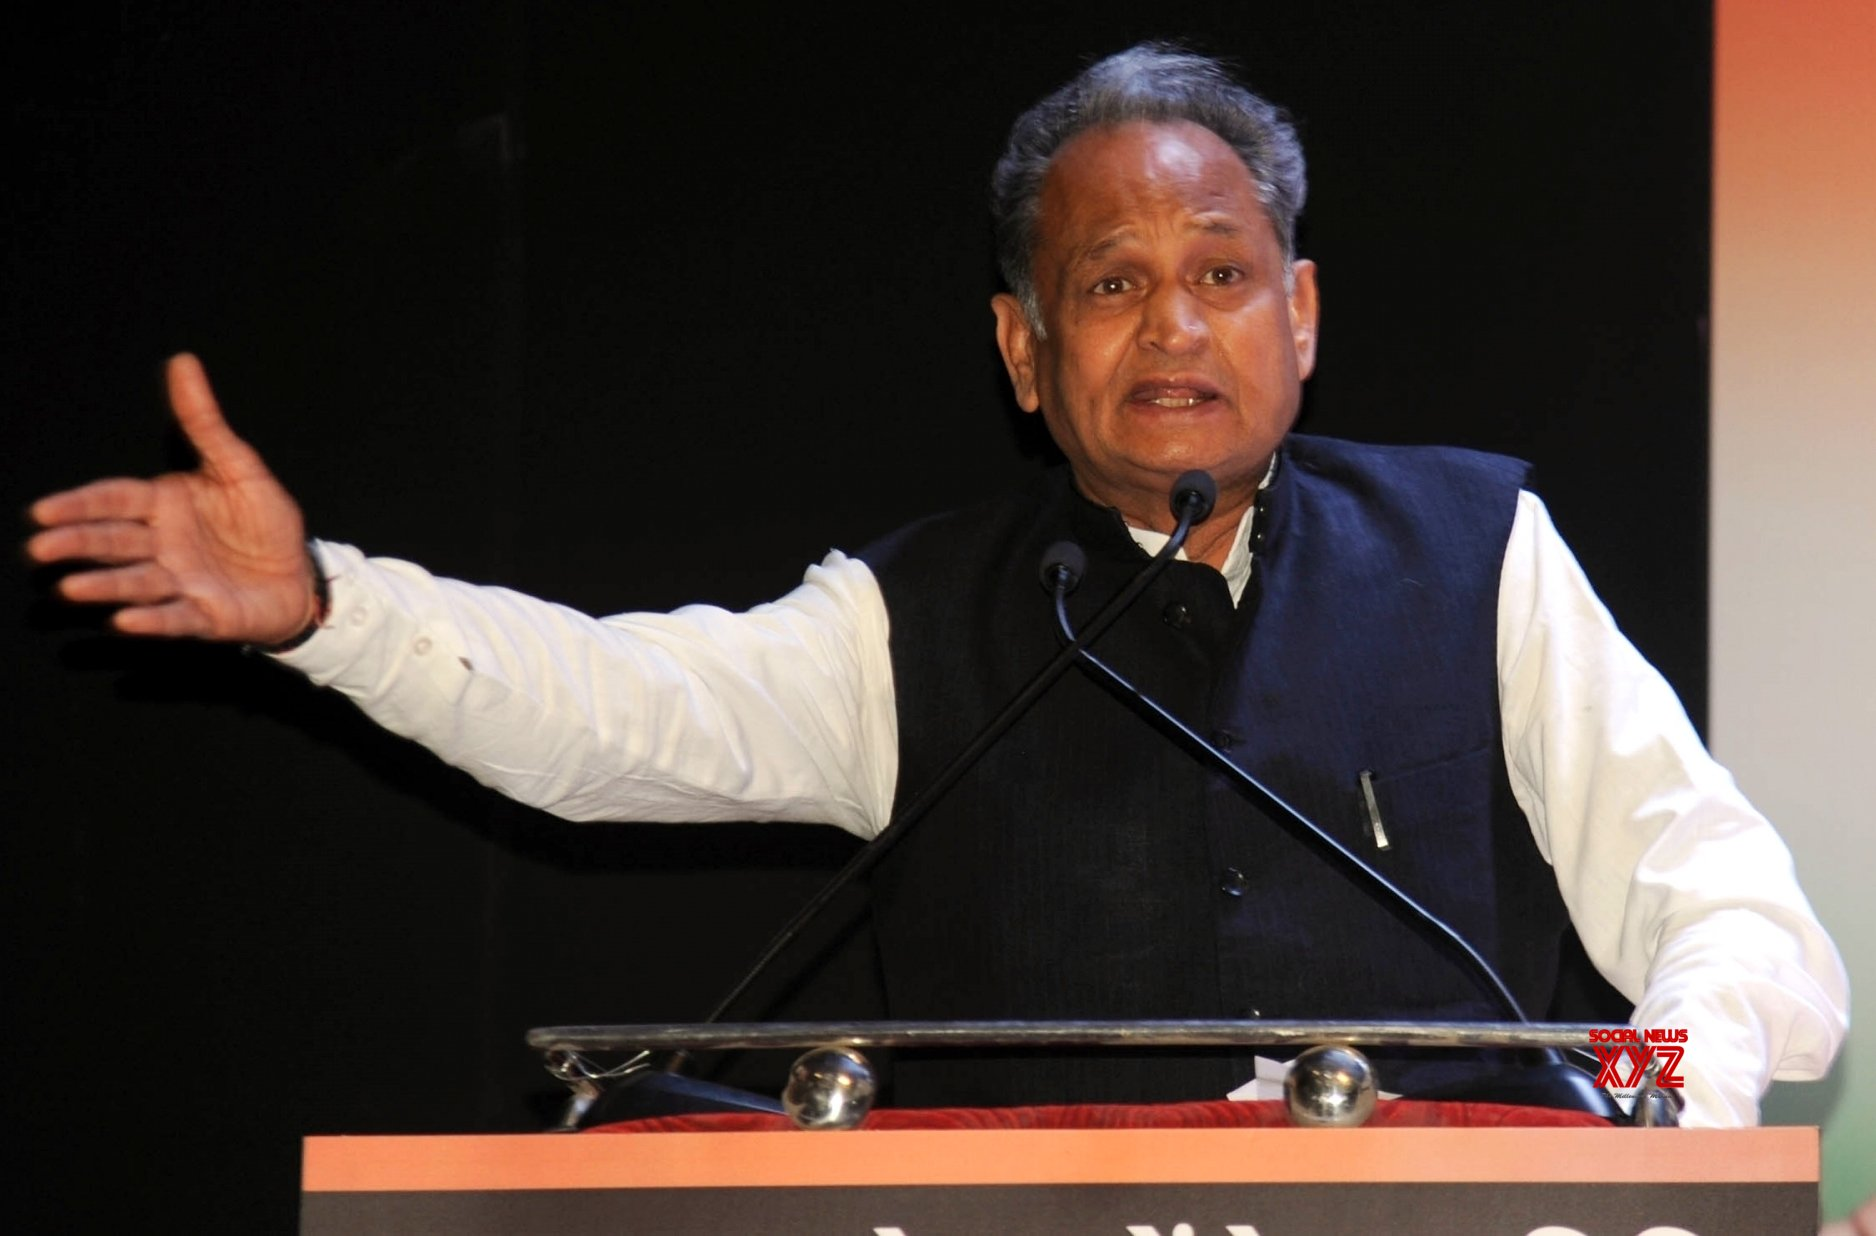 We should respect SC verdict on Ayodhya, says Rajasthan CM